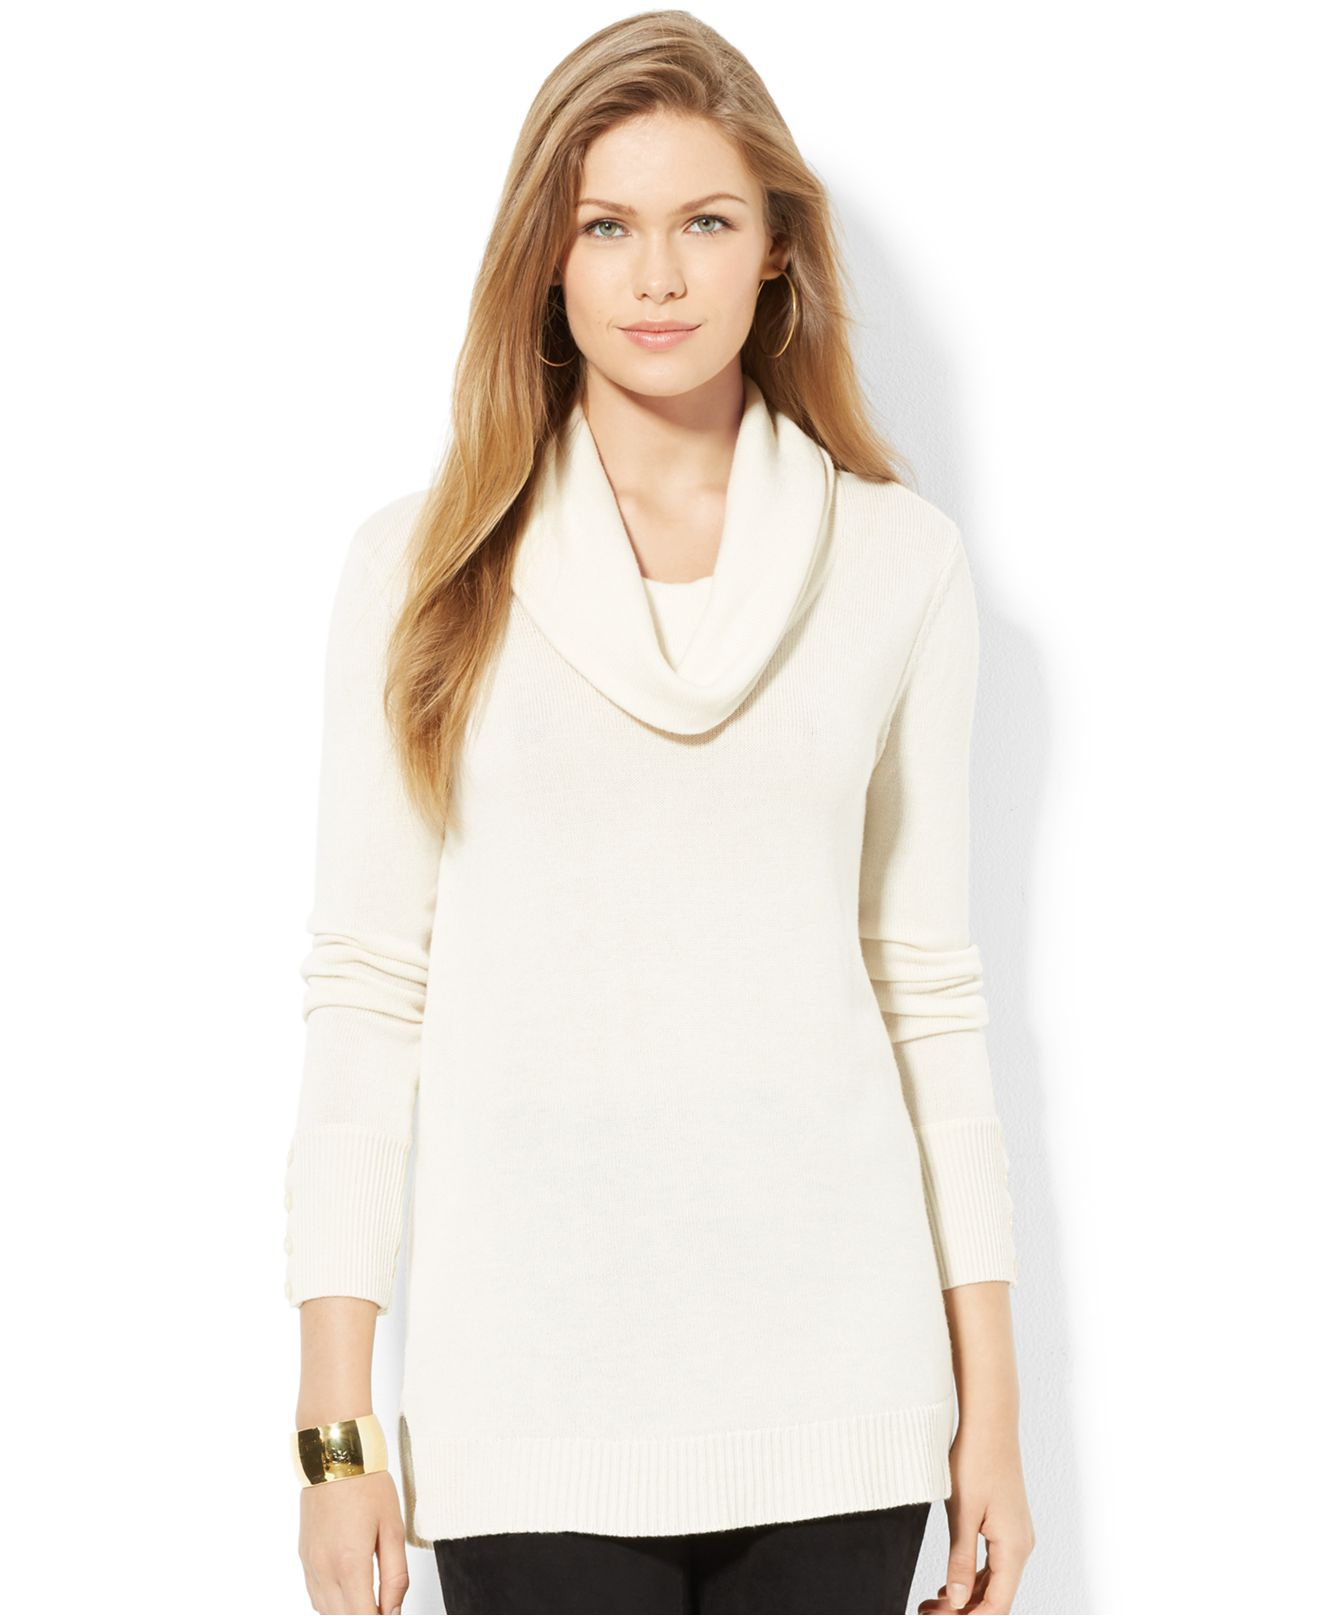 Lauren by ralph lauren Cowl-Neck Button-Cuff Sweater in Natural | Lyst